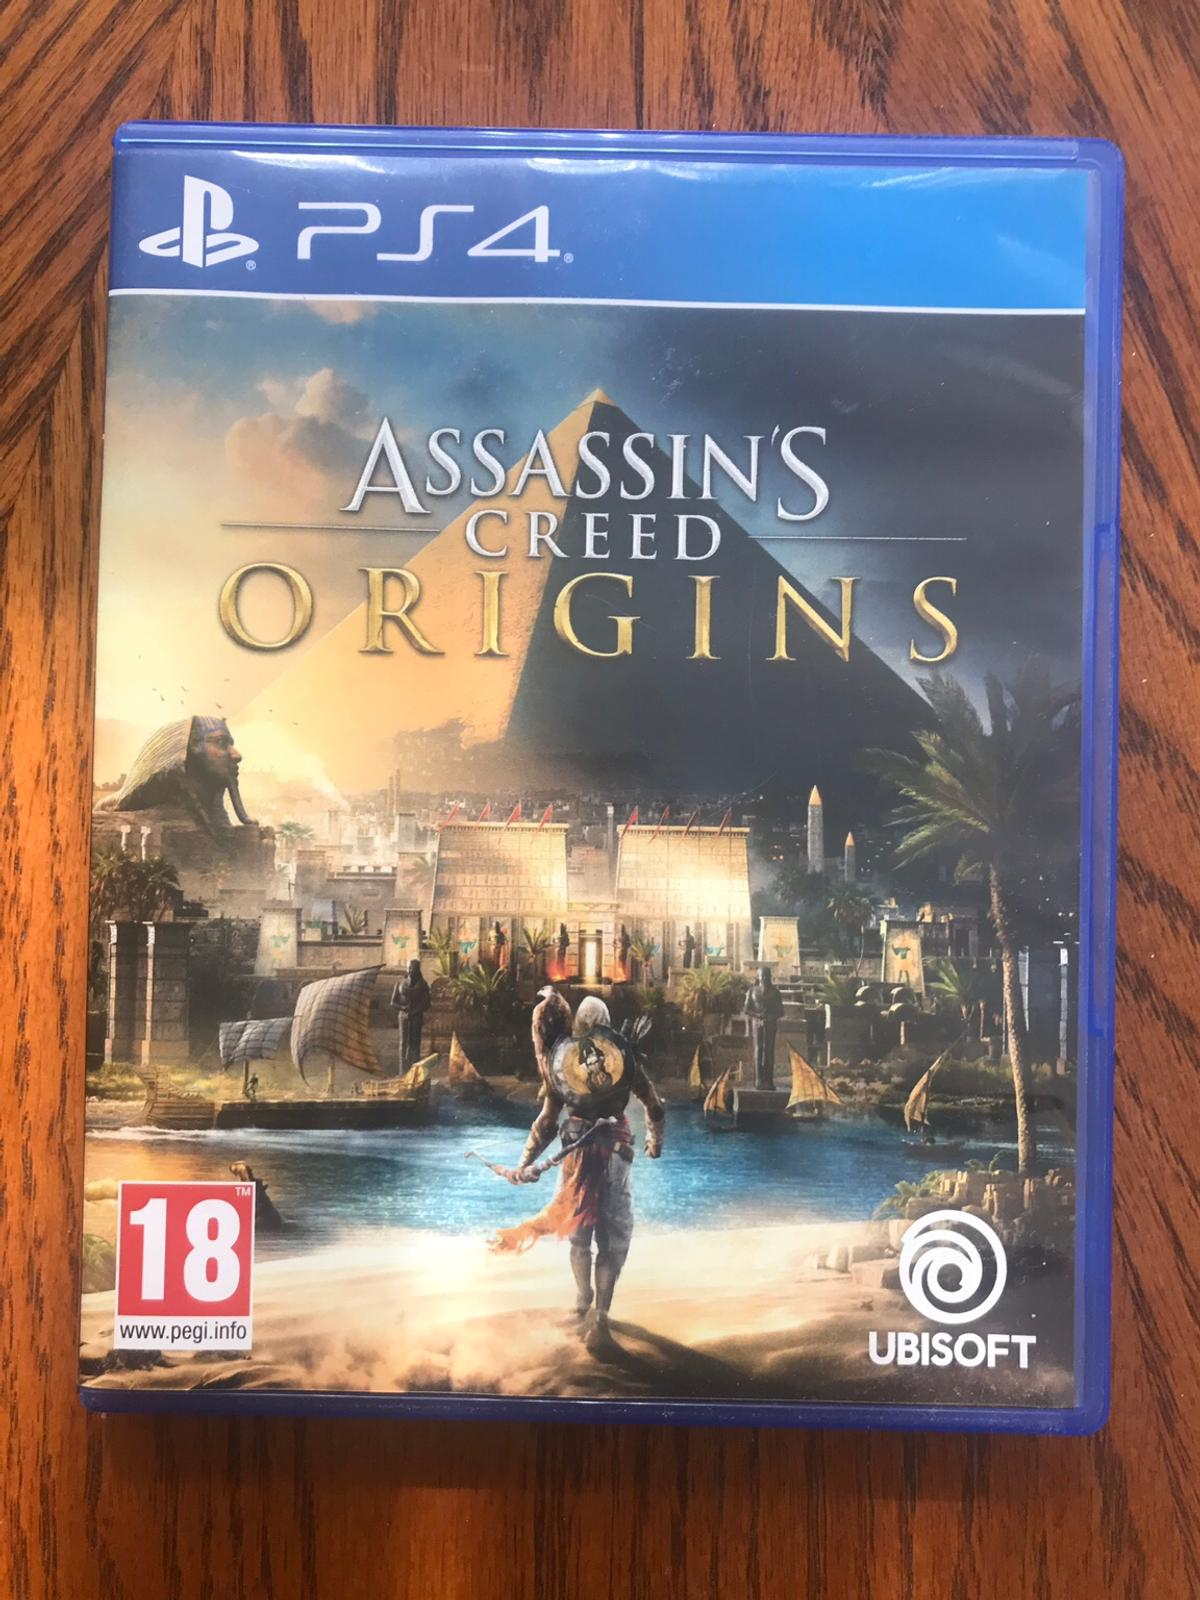 Assassins Creed Origins Ps4 In Dy1 Dudley For 25 00 For Sale Shpock